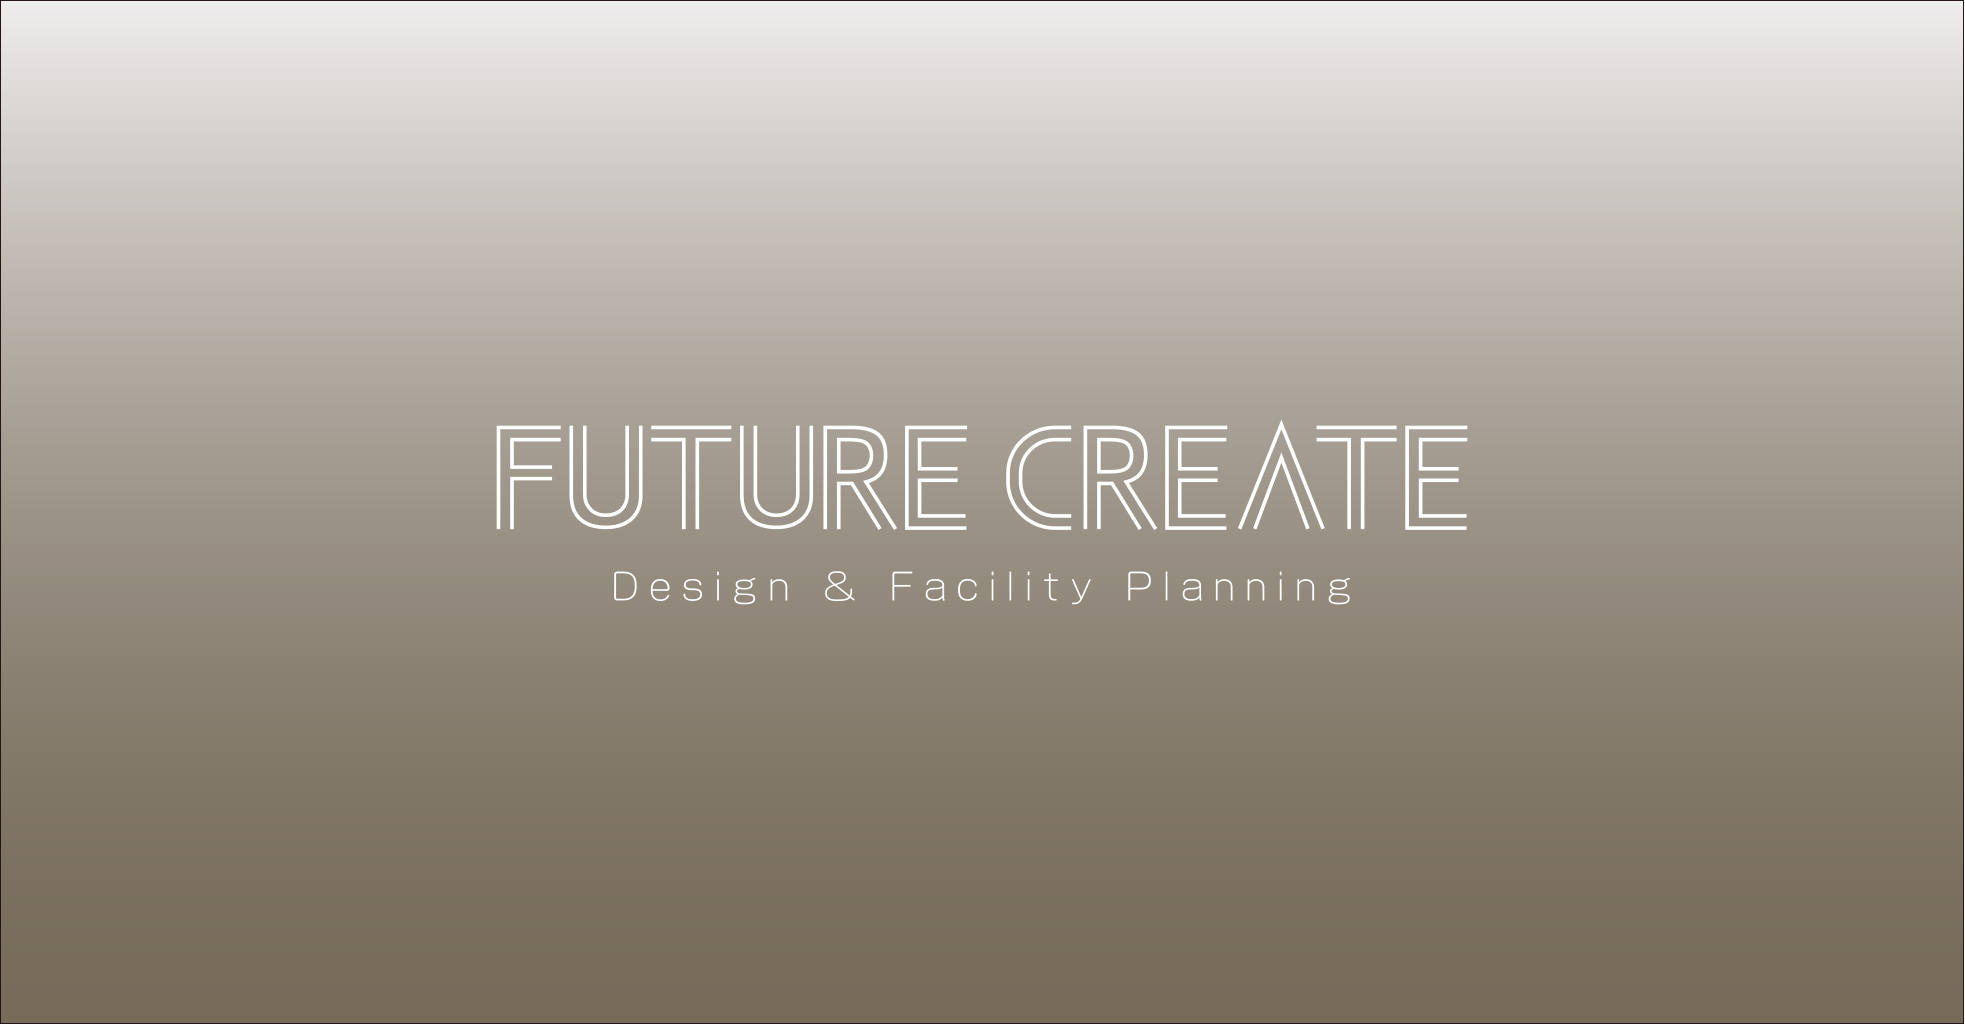 株式会社FUTURECREATE